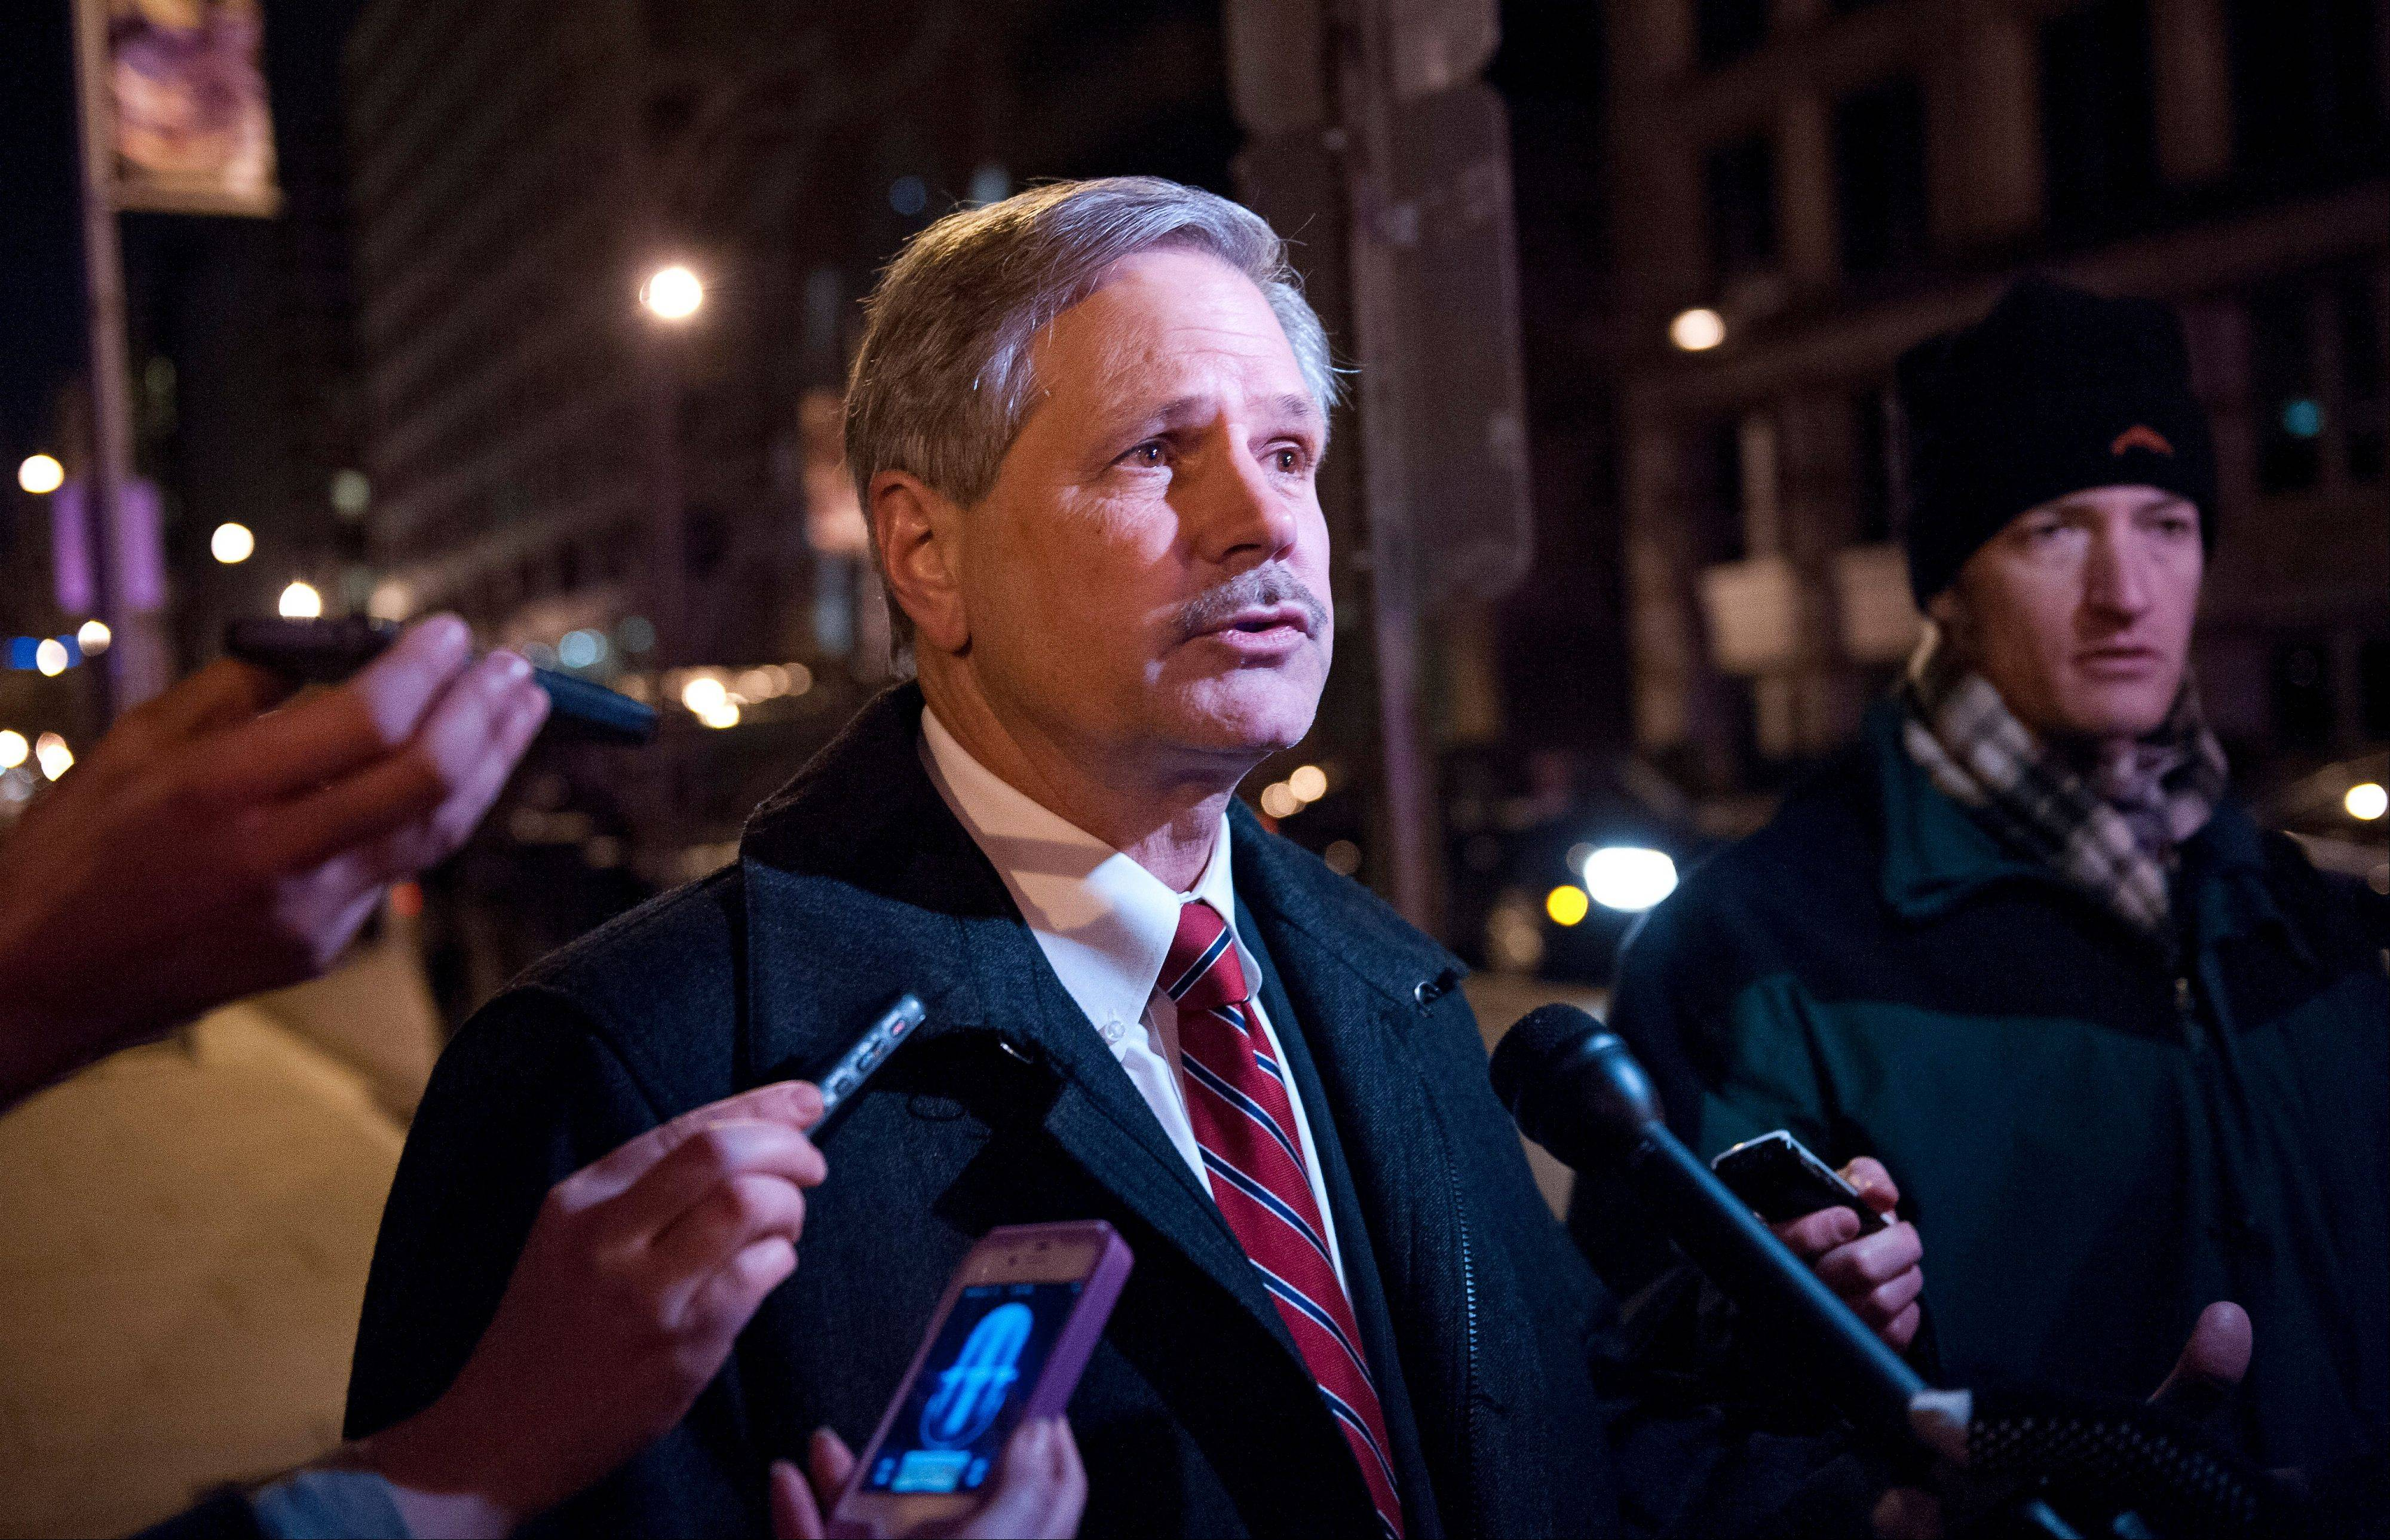 Sen. John Hoeven, a North Dakota Republican, speaks with reporters as he leaves the Jefferson Hotel after a dinner meeting hosted by President Barack Obama for a few Republican Senators in Washington Wednesday.